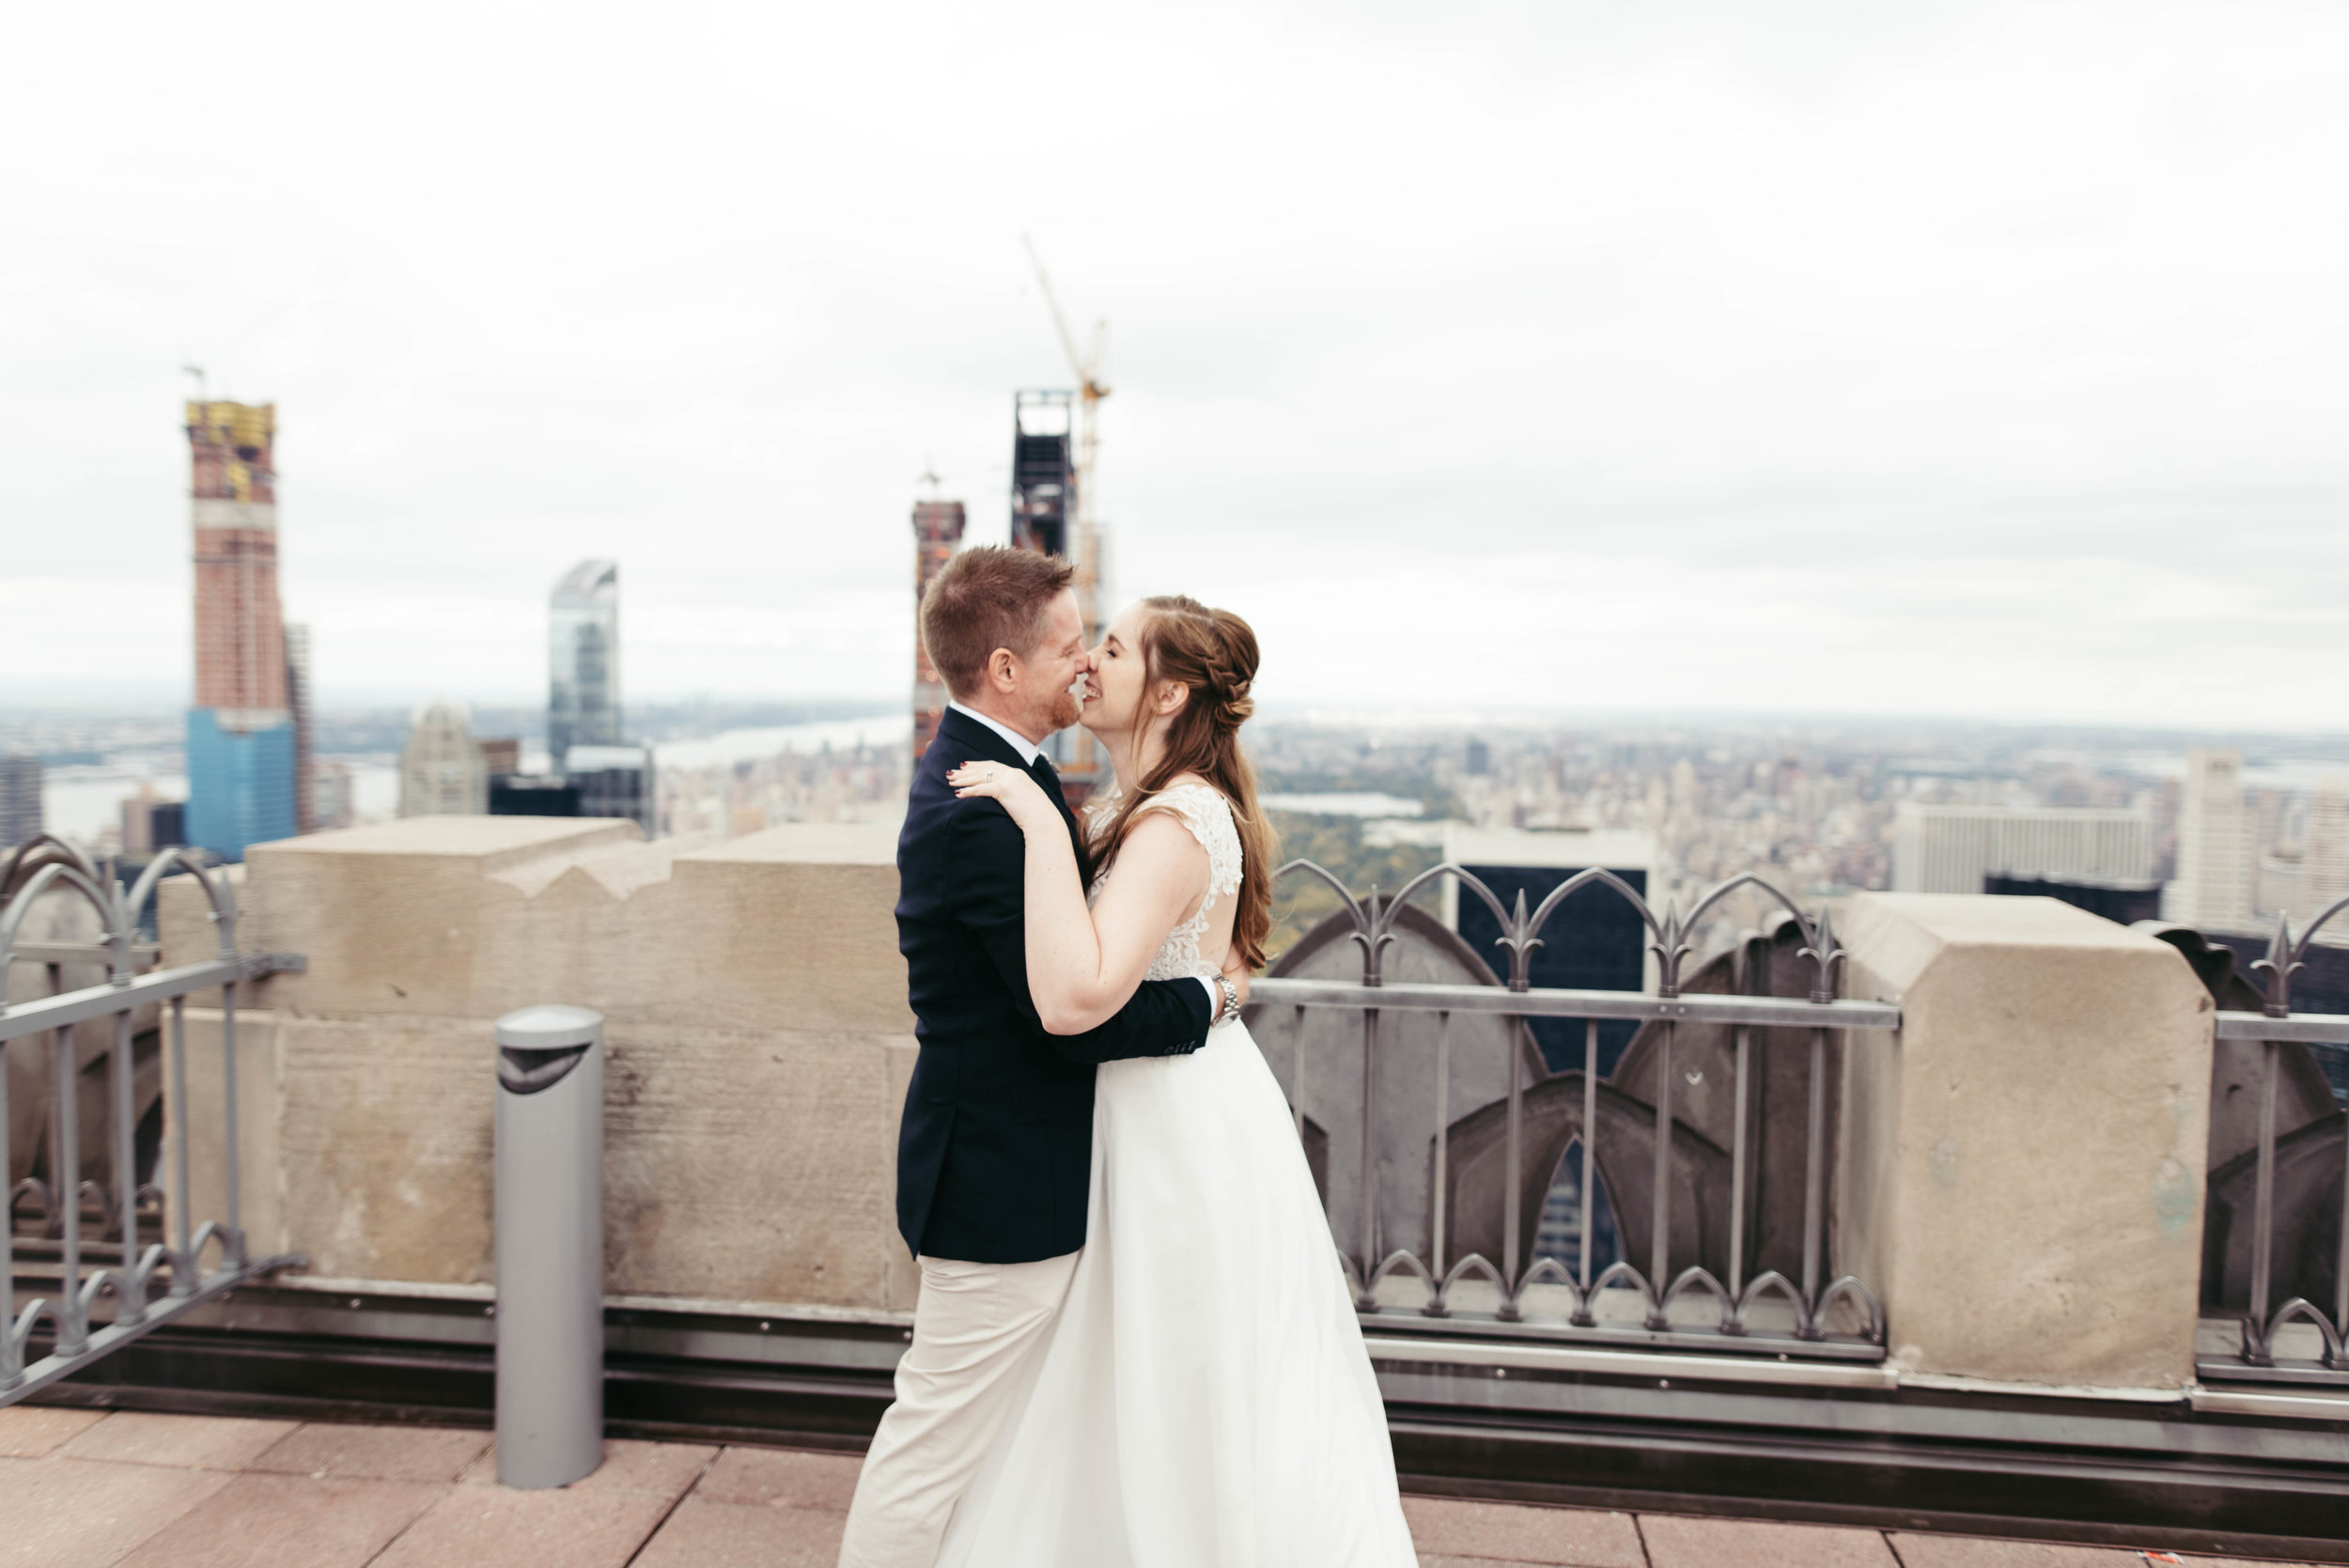 NYC Elopement-70.jpg